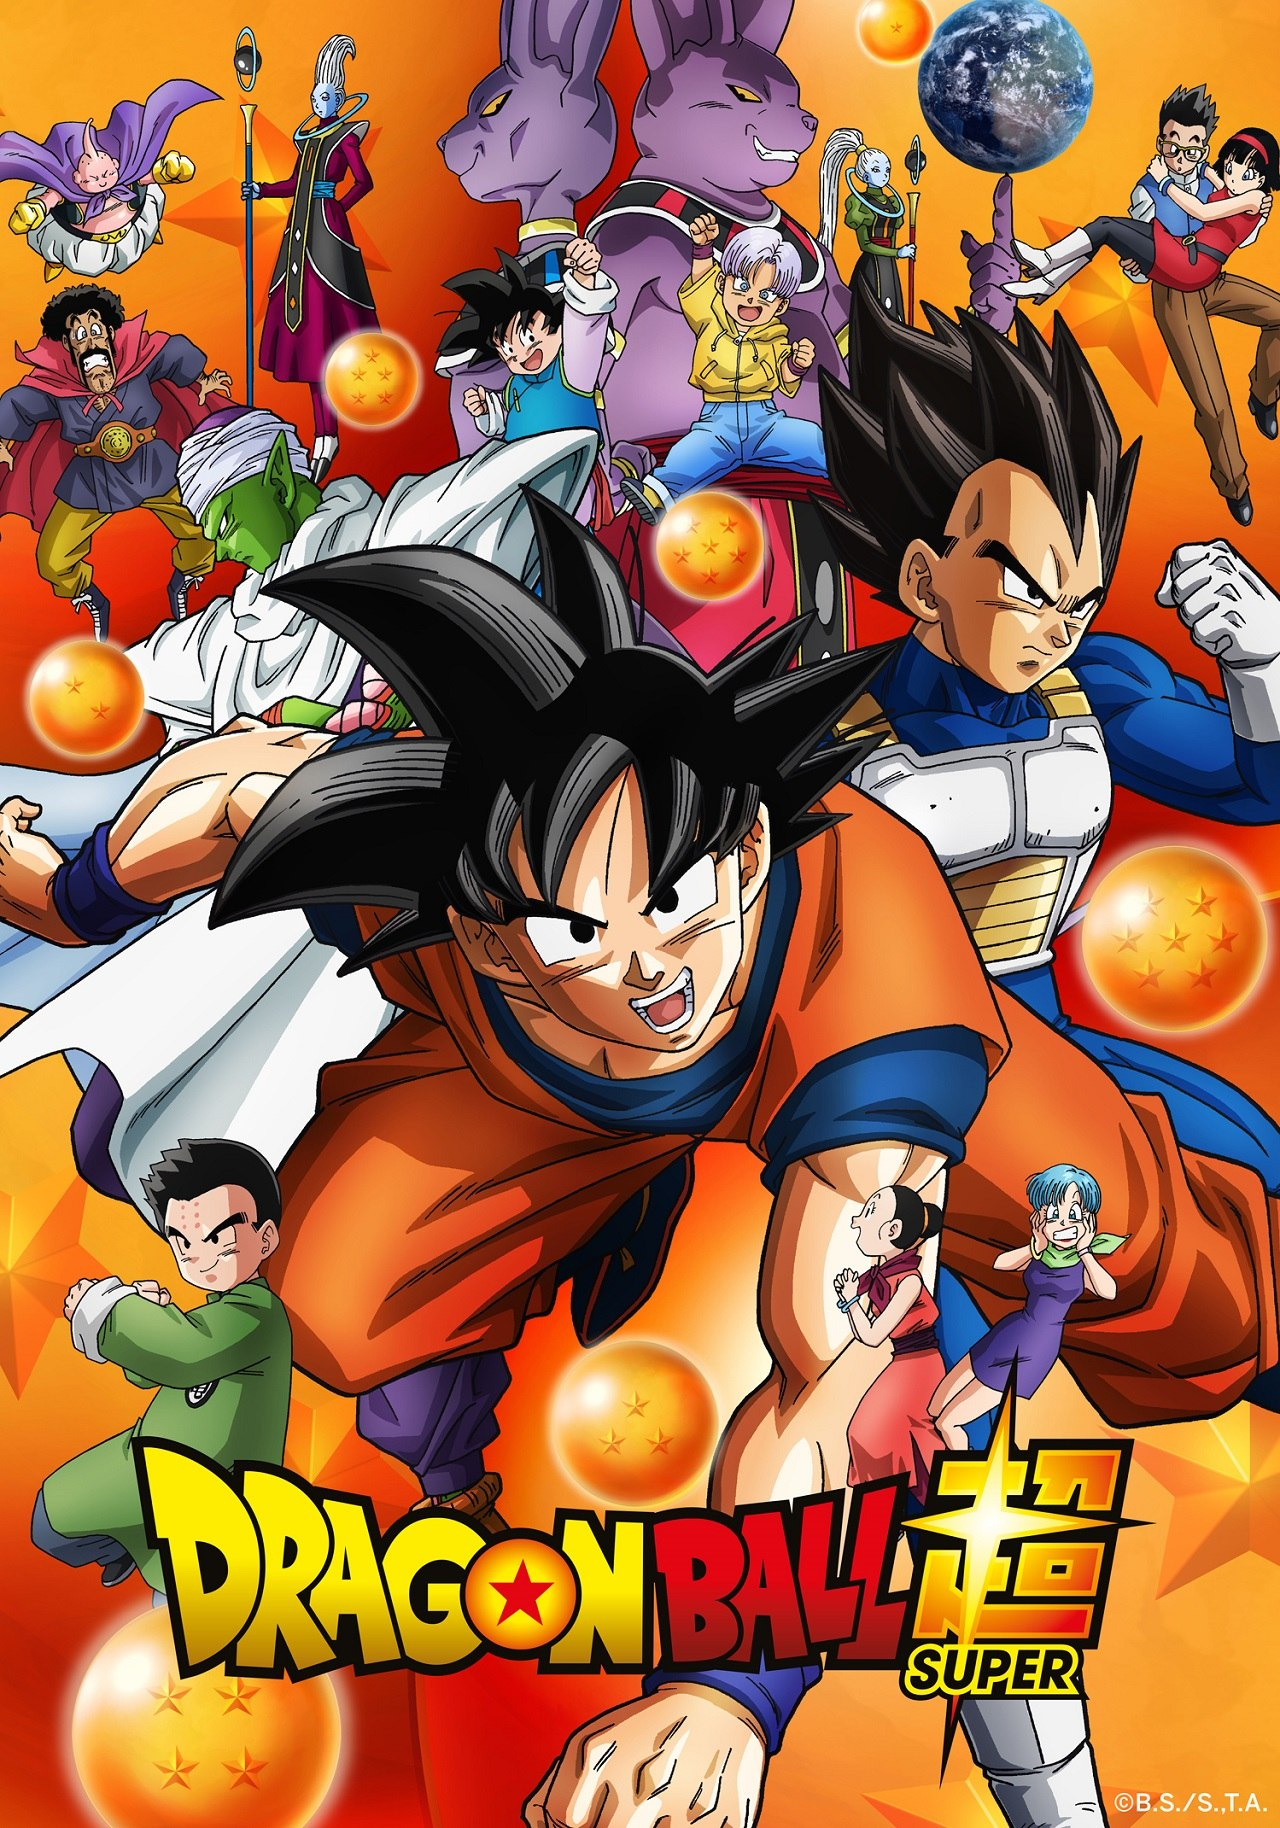 Tokyo after a successful start on fuji tv in japan toei animation is launching dragon ball super at mipcom dragon ball super is an all new series and